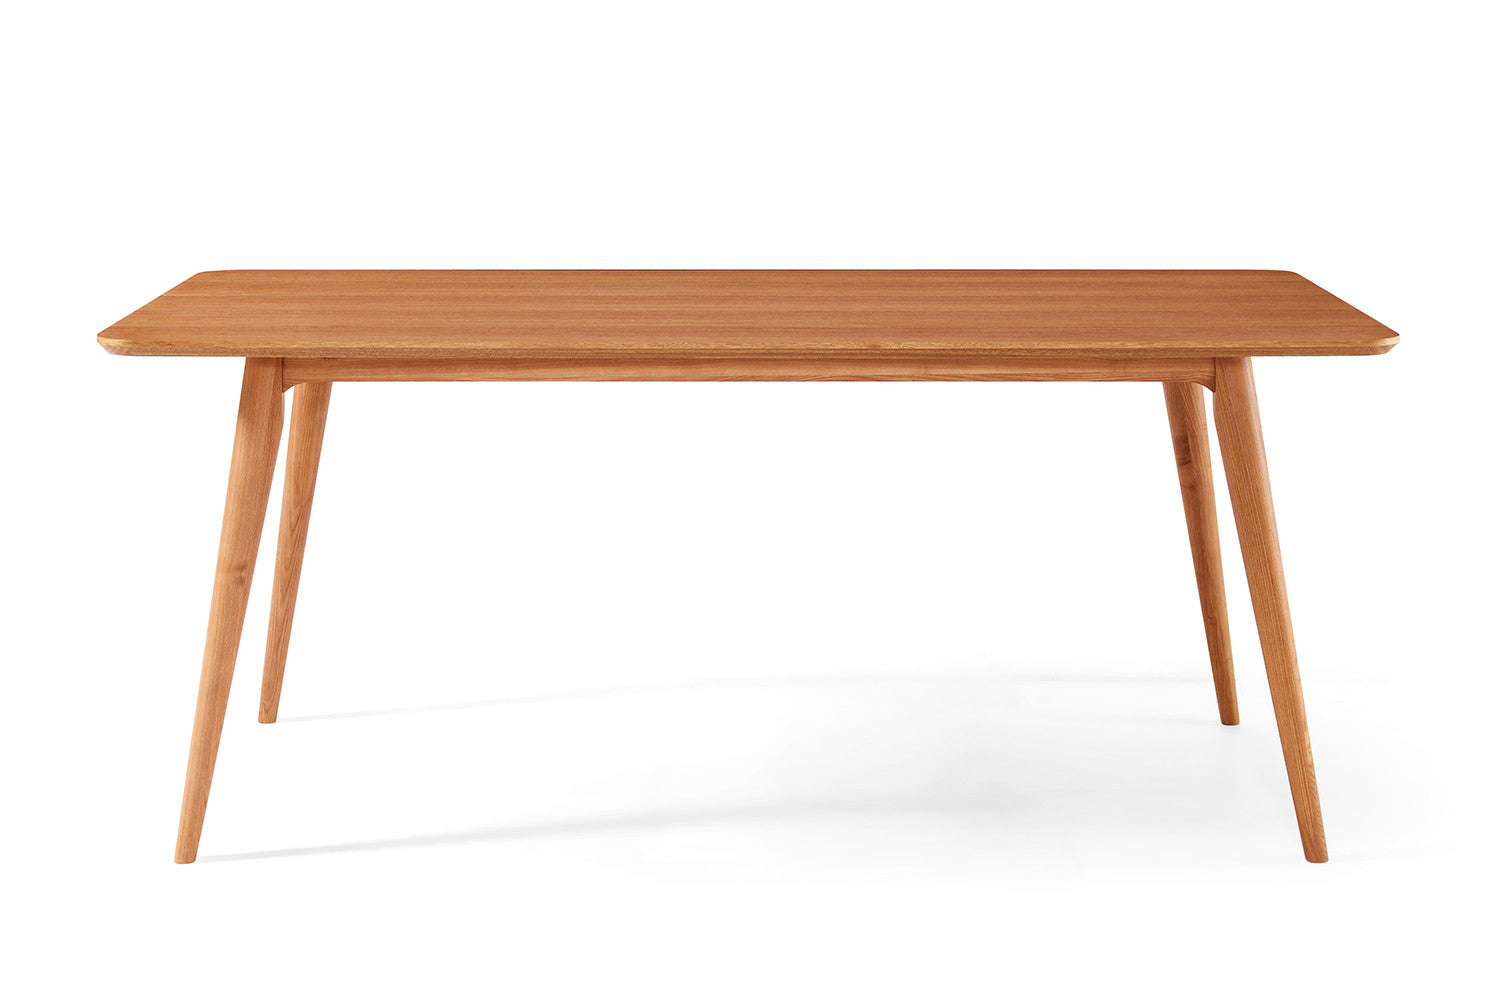 Table de salle manger design en bois julia dewarens for Table bois style scandinave